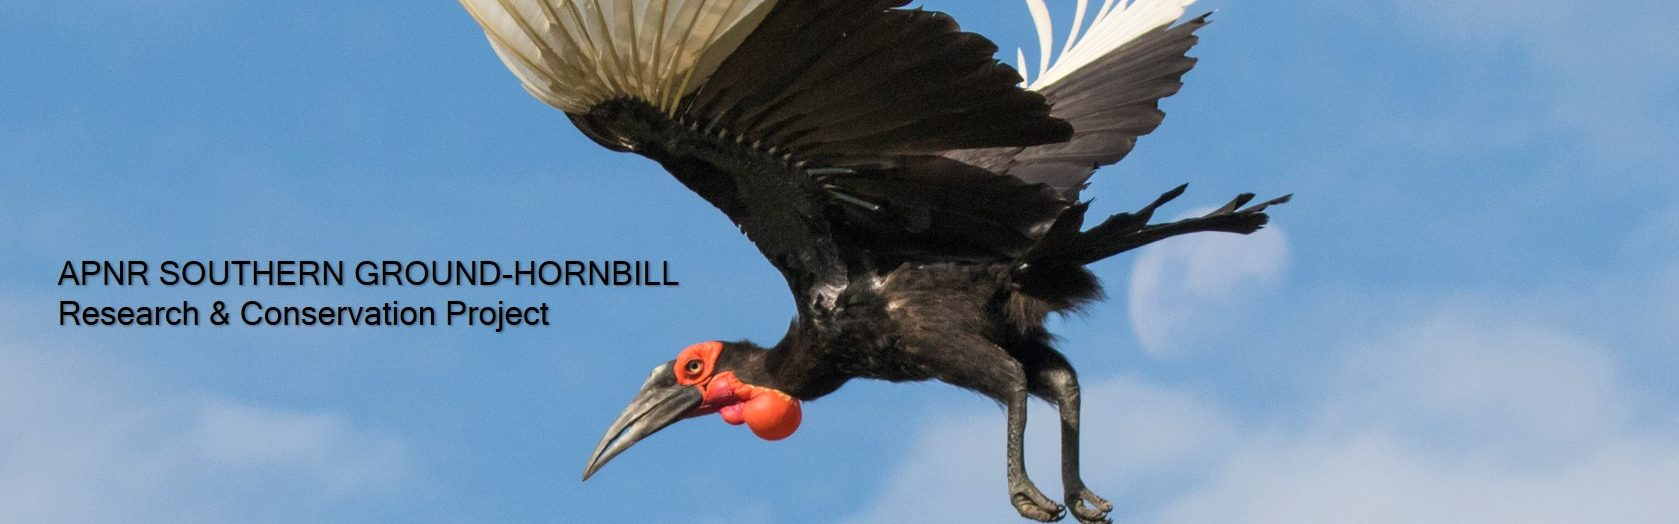 APNR Southern Ground-Hornbill Research & Conservation Project